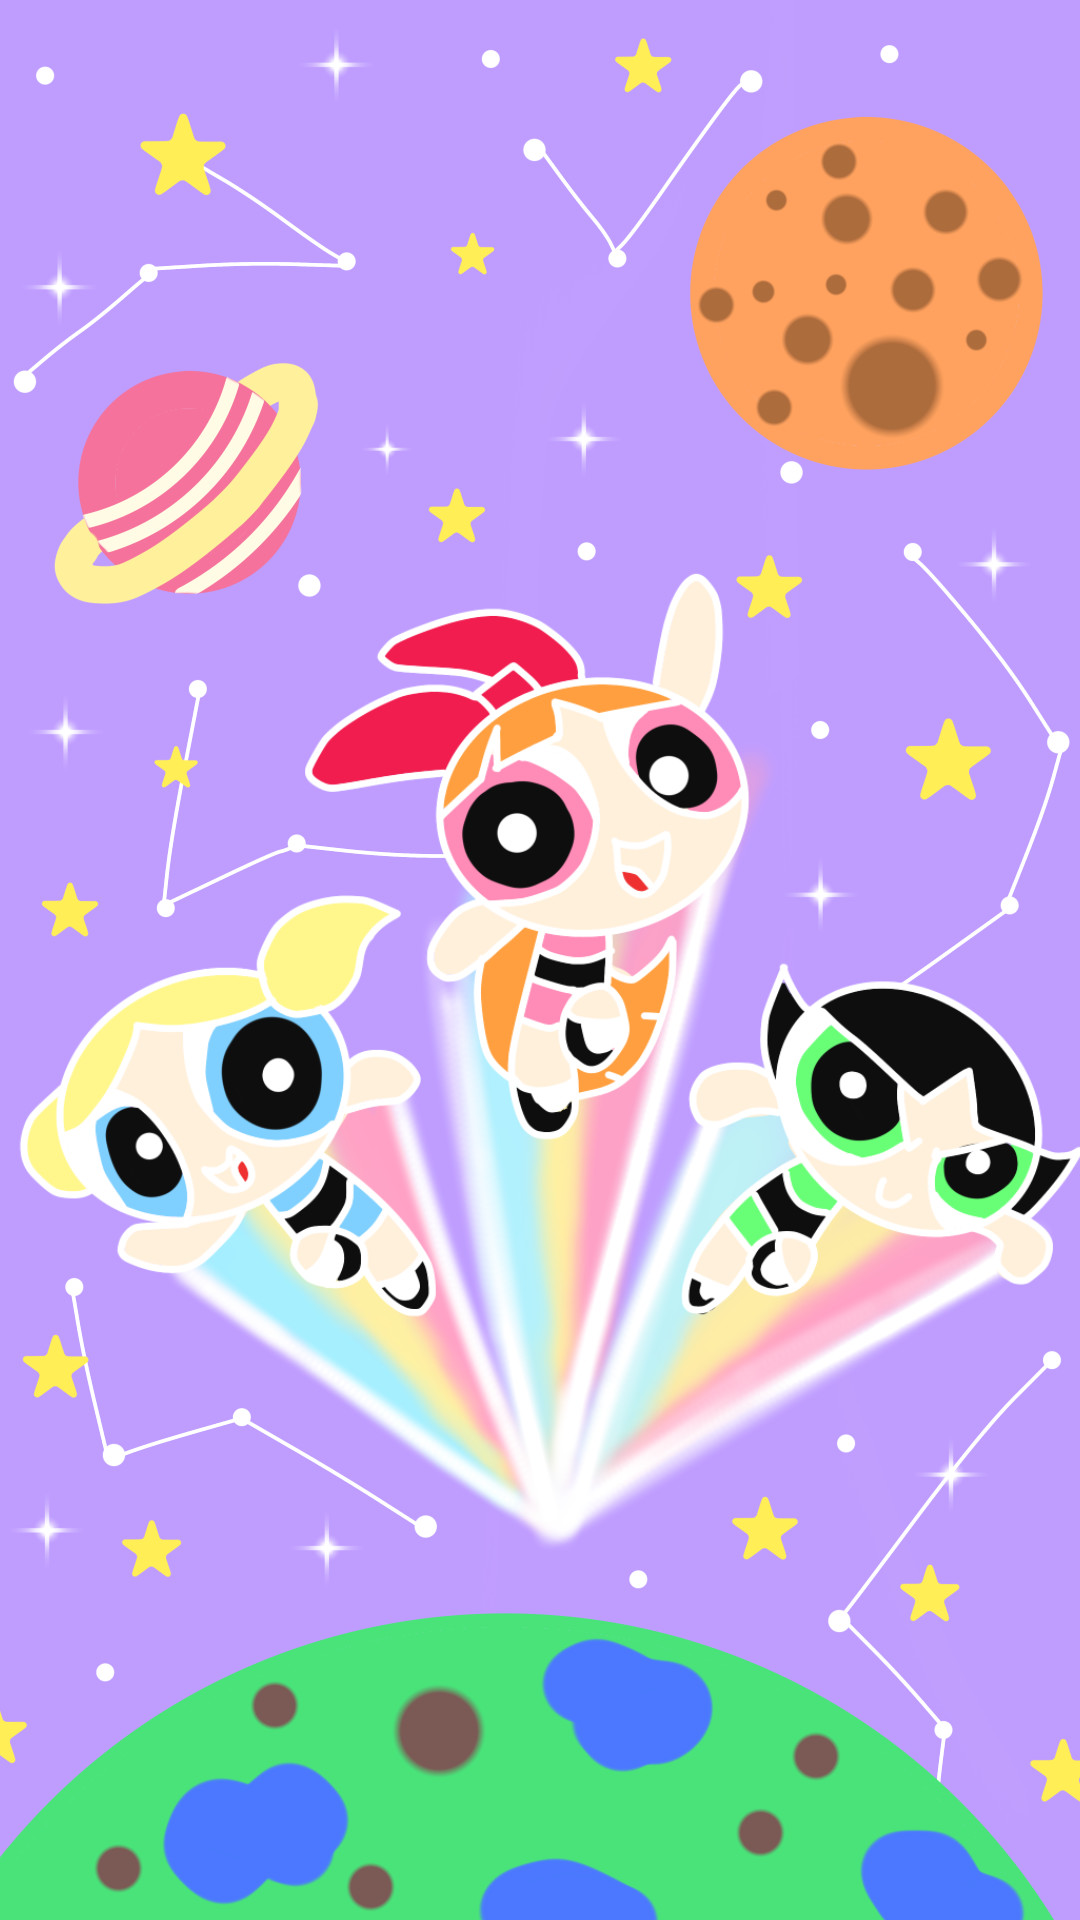 1080x1920 Save ScreenCartoon WallpaperPowerpuff GirlsIphone 6Phone WallpapersCartoon  NetworkSpiceBubblesCartoons